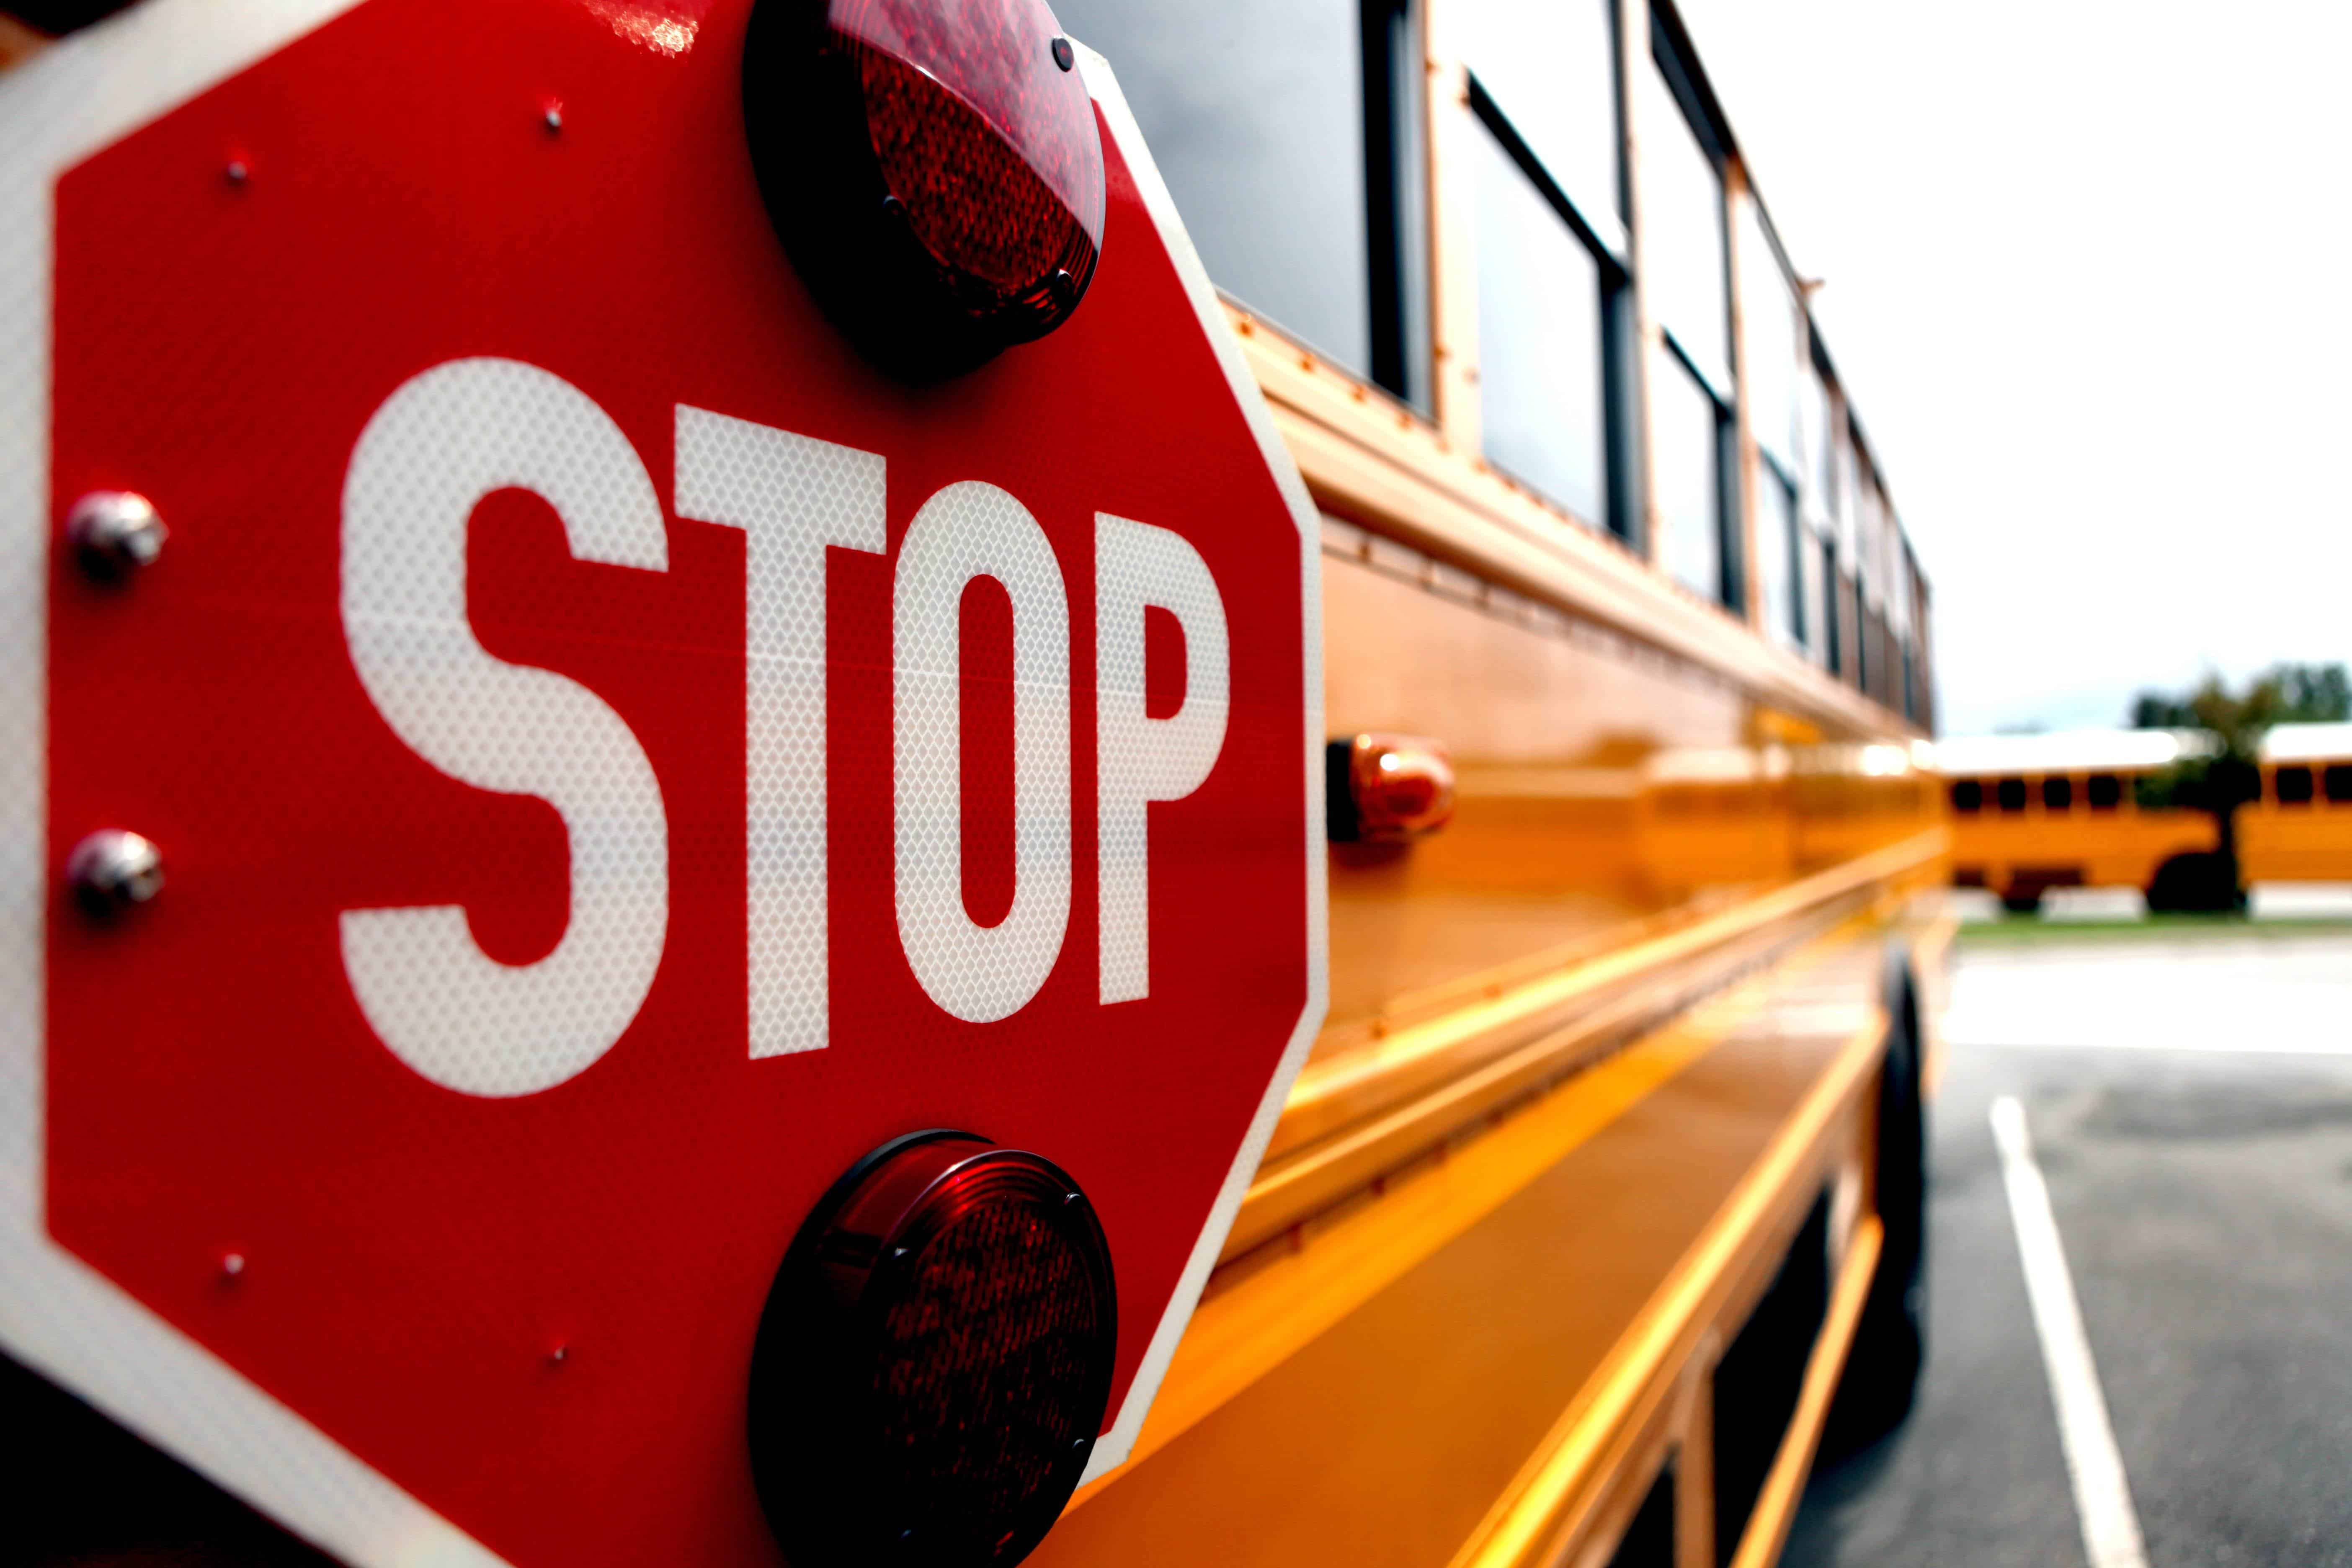 6 Rules for Approaching a Stopped School Bus +Video